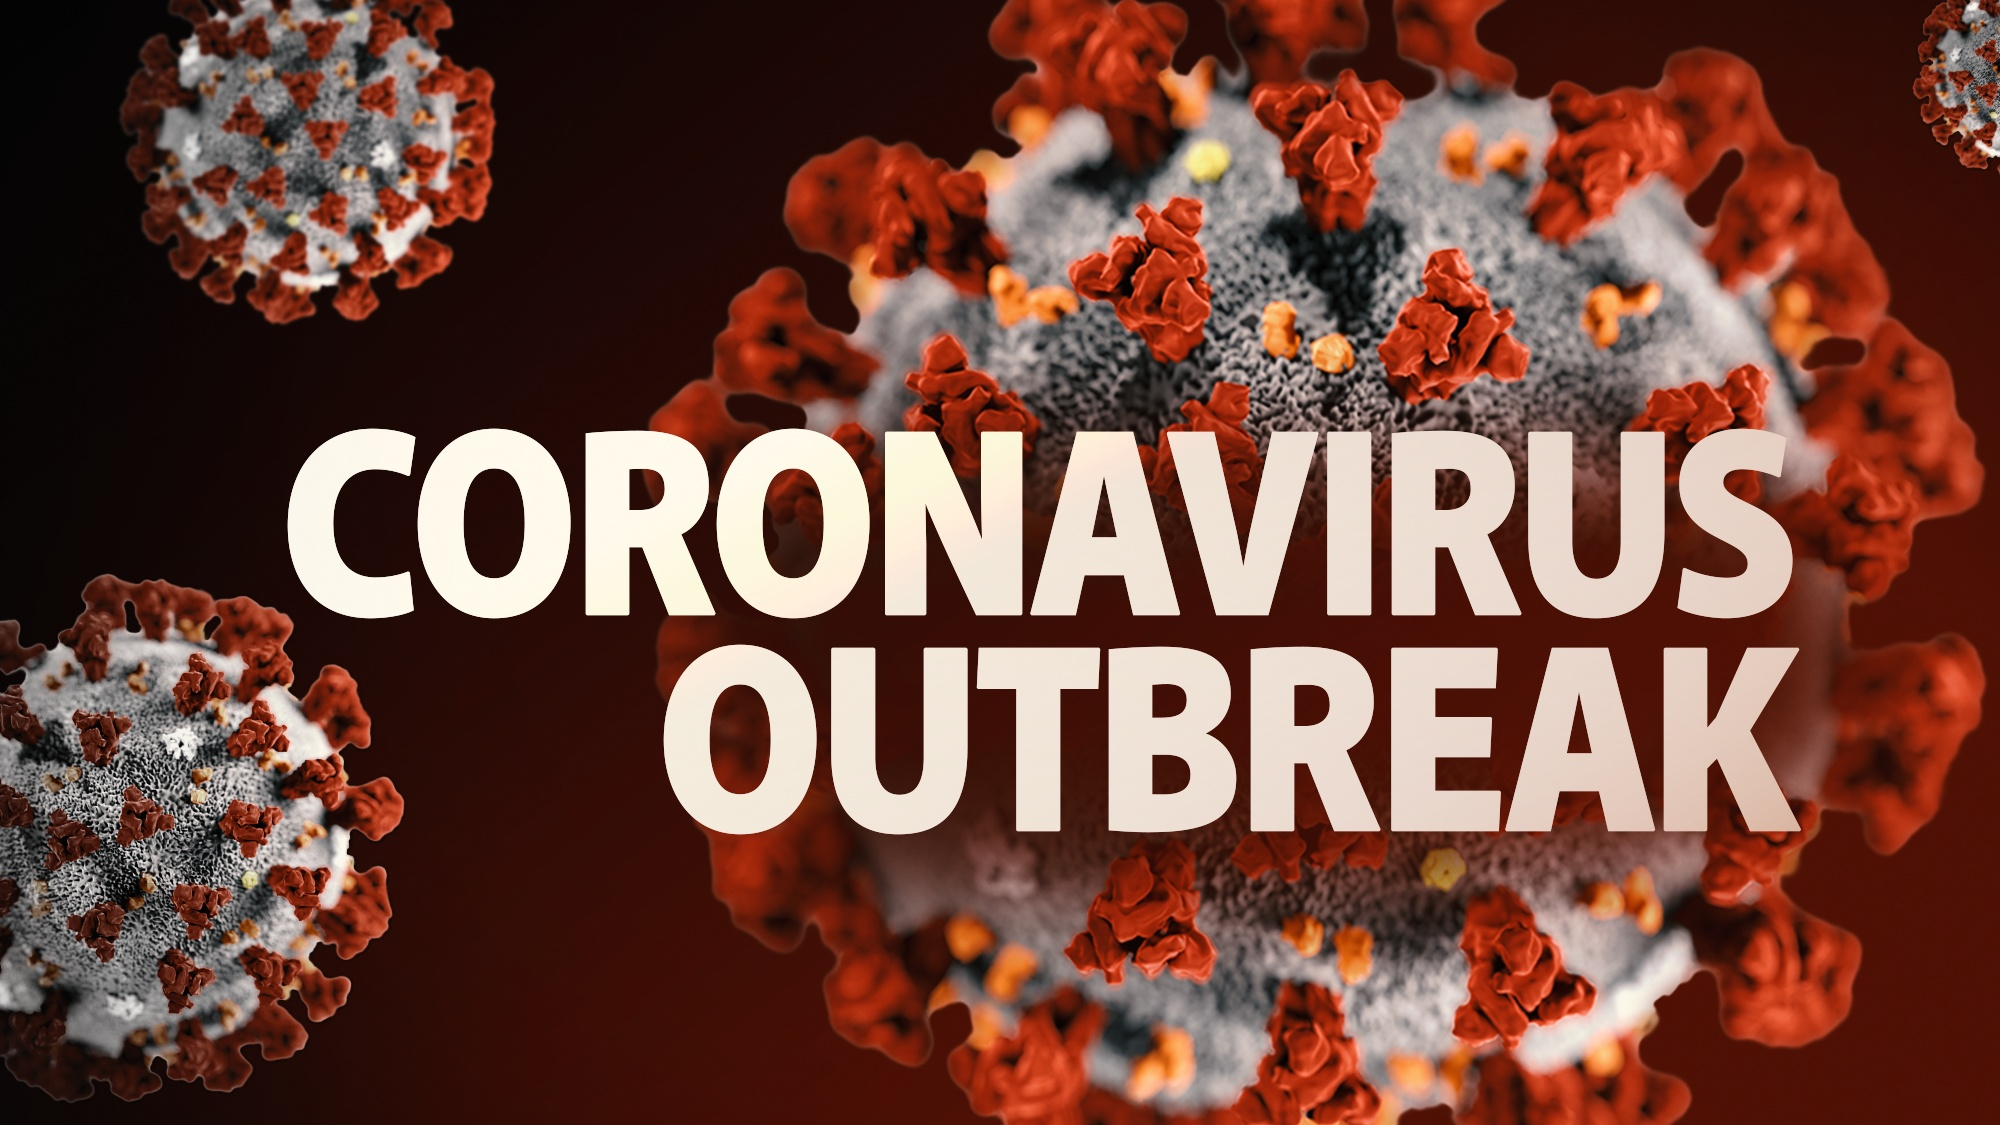 Two Travel Related Cases Of Covid 19 Reported In Harris: 14 Coronavirus Cases In NC; 84 Contacts Being Monitored